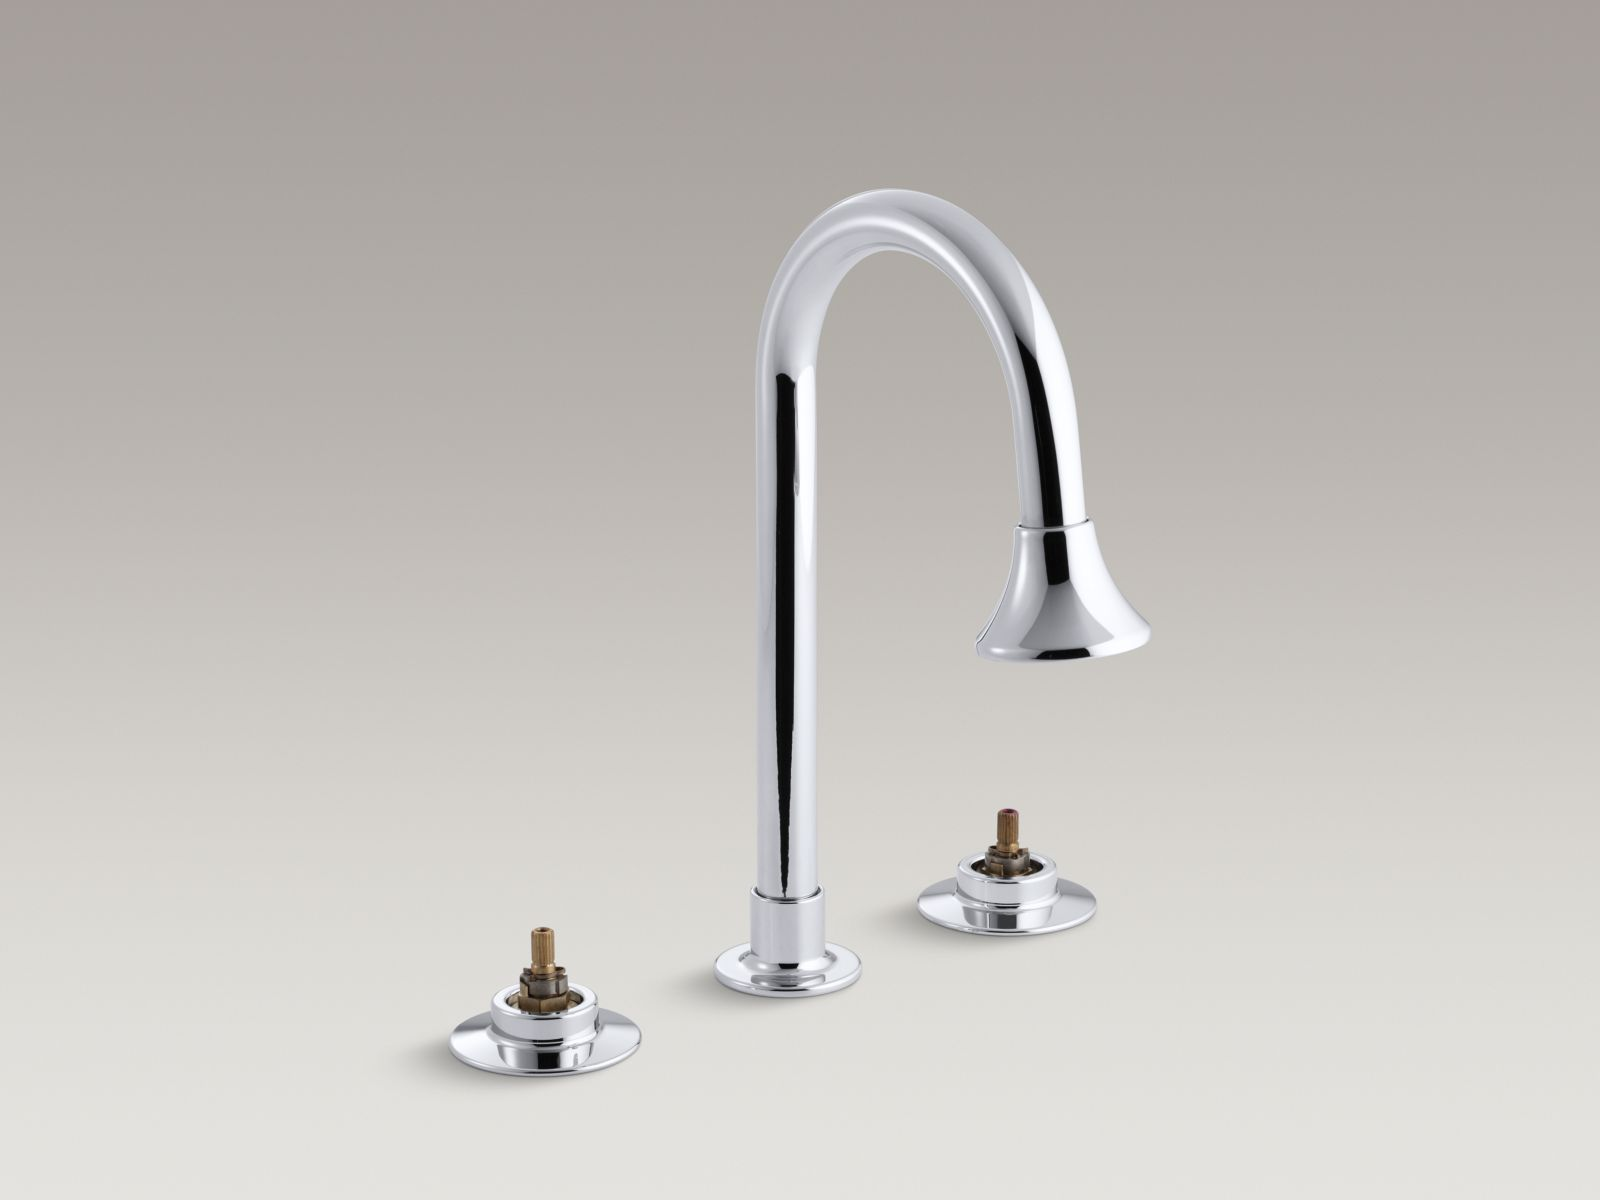 commercial bathroom faucets. Kohler K-7303-KC-CP Triton Widespread Handle-less Commercial Bathroom Faucet Faucets